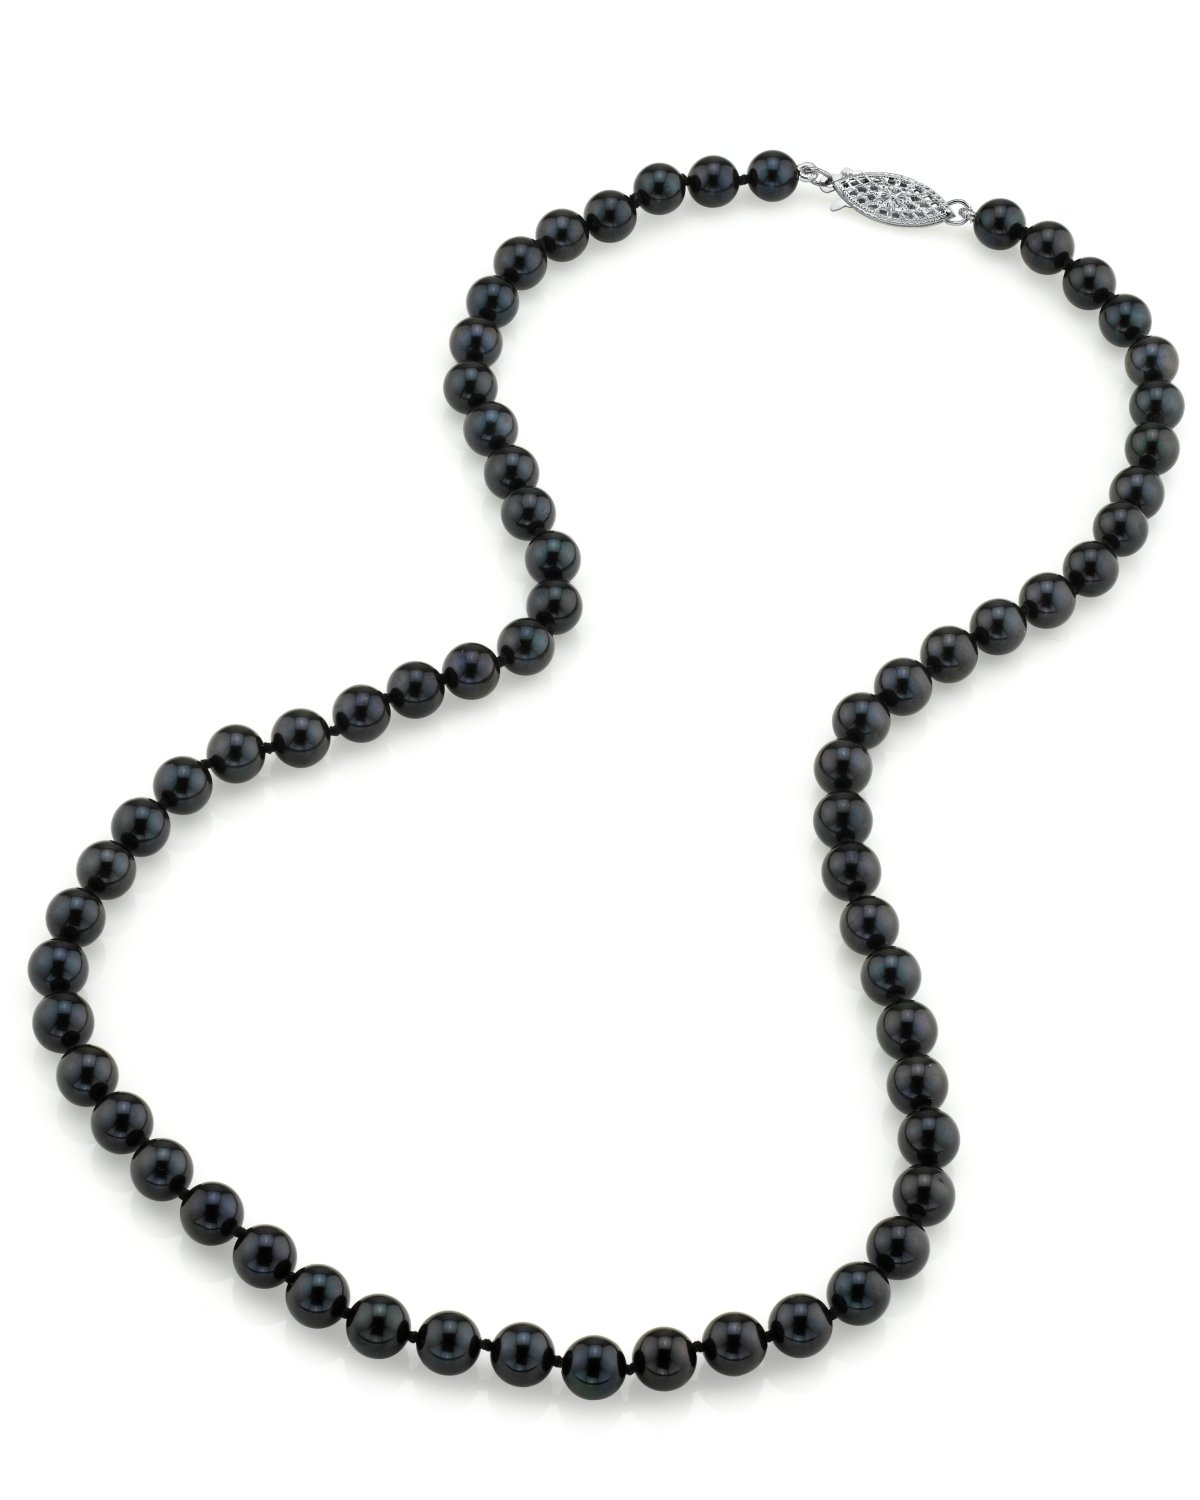 903e9f3d5f5309 6.0-6.5mm Japanese Akoya Black Pearl Necklace- AA+ Quality